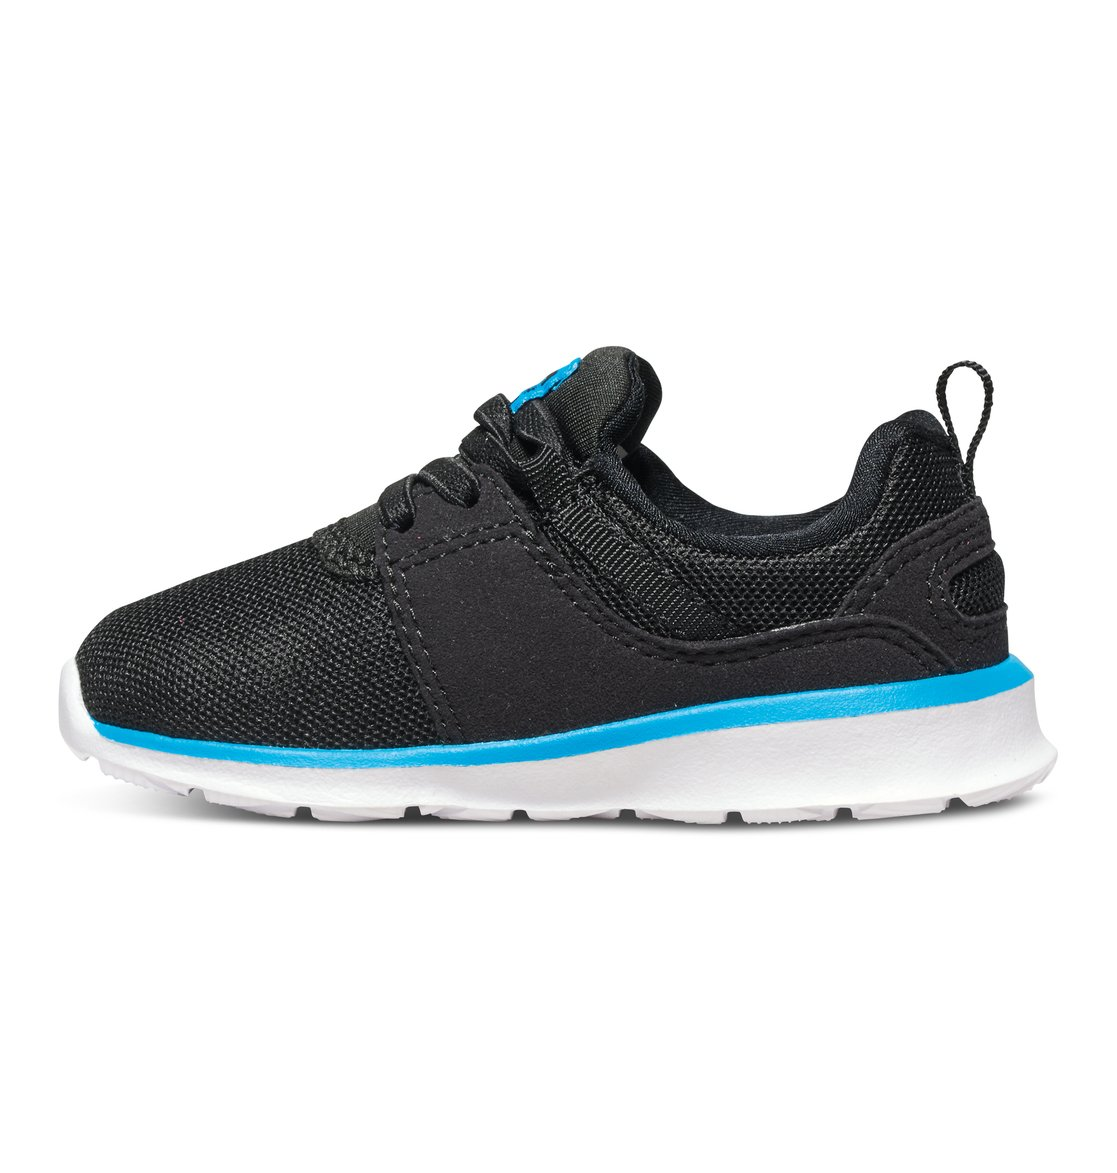 DC-Shoes-Heathrow-Chaussures-pour-Bebes-ADTS700041